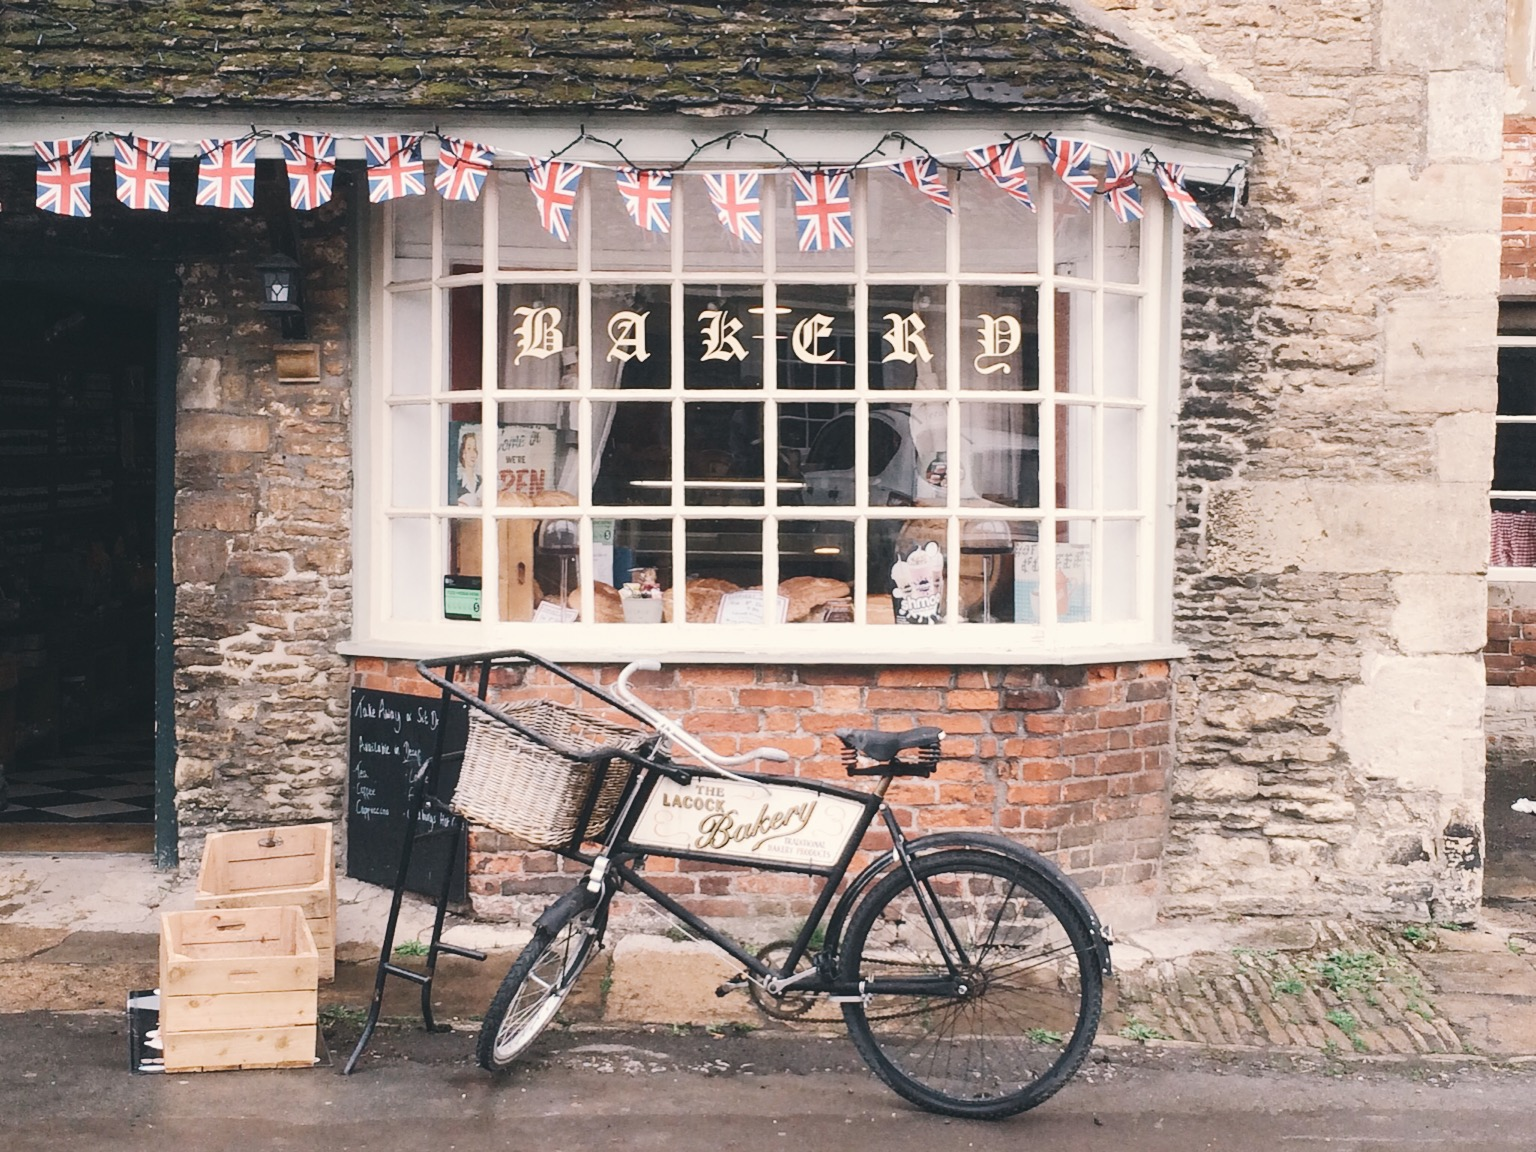 Lacock, England bake shop featured in tv and movies